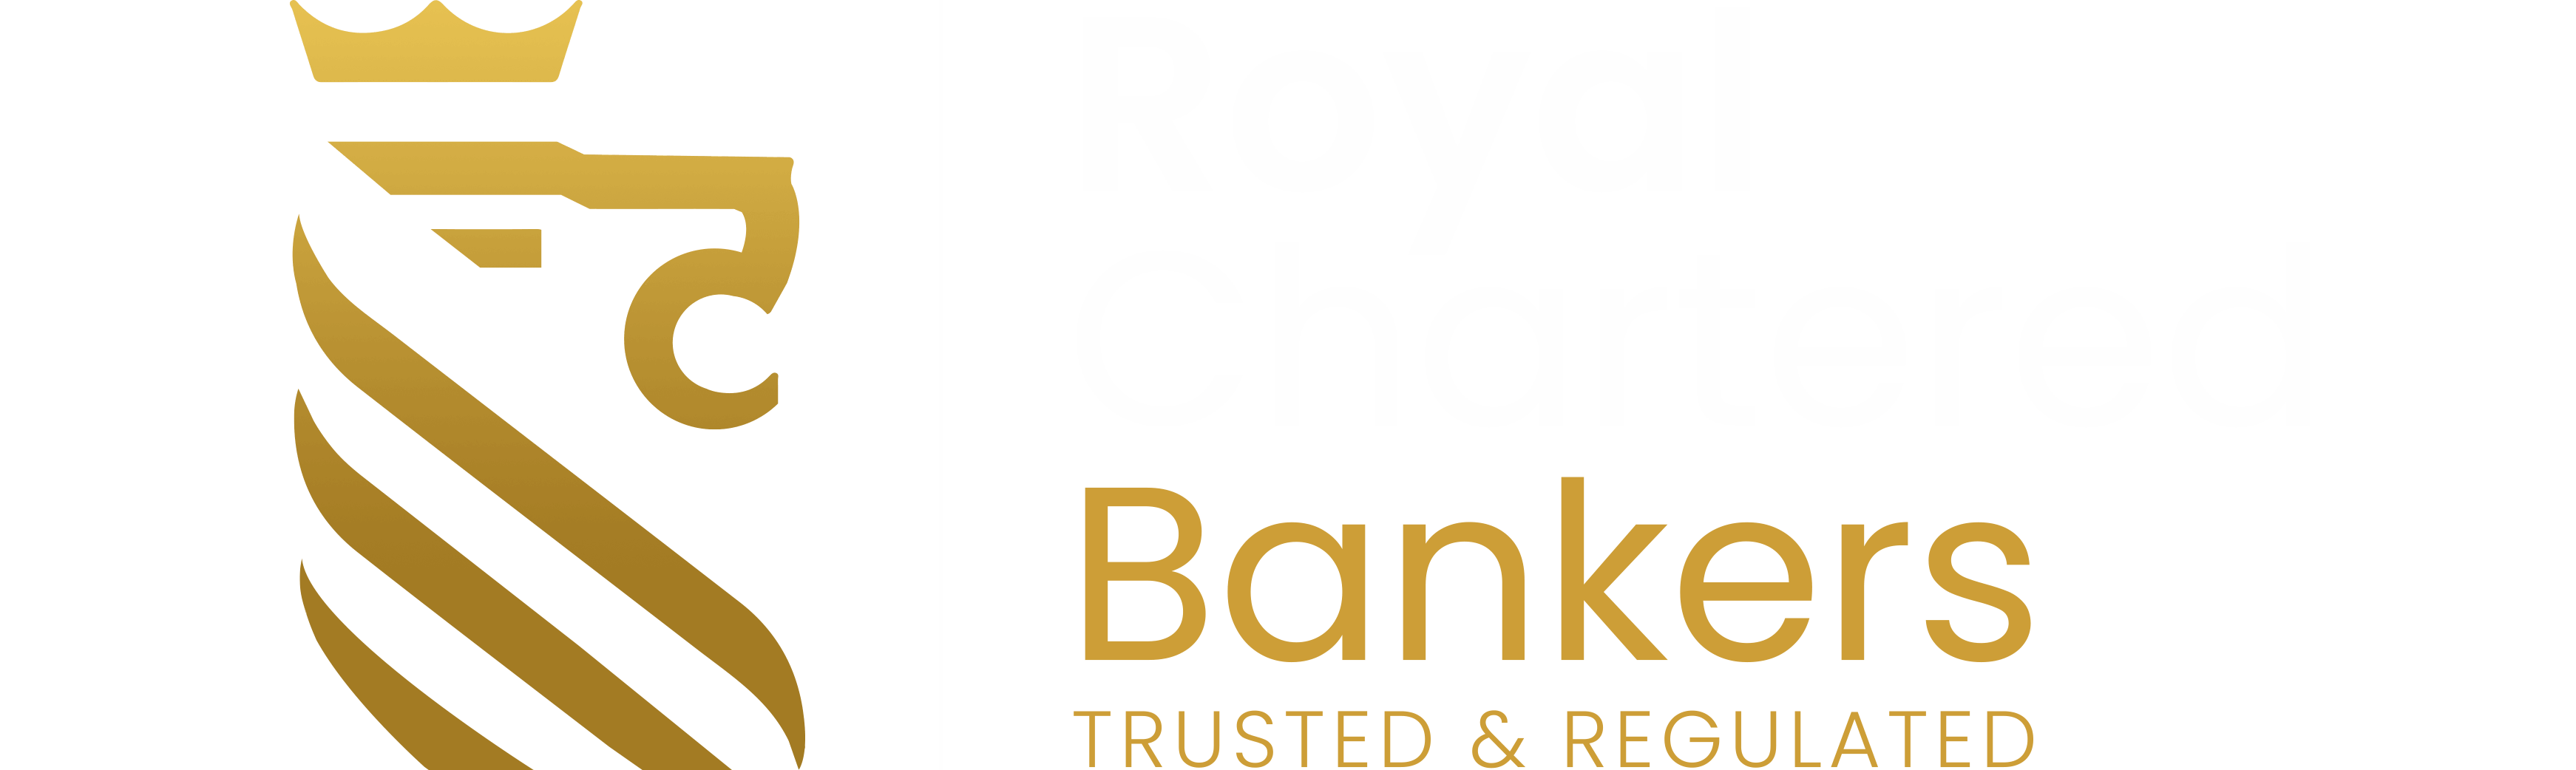 Royal Chartered Bankers